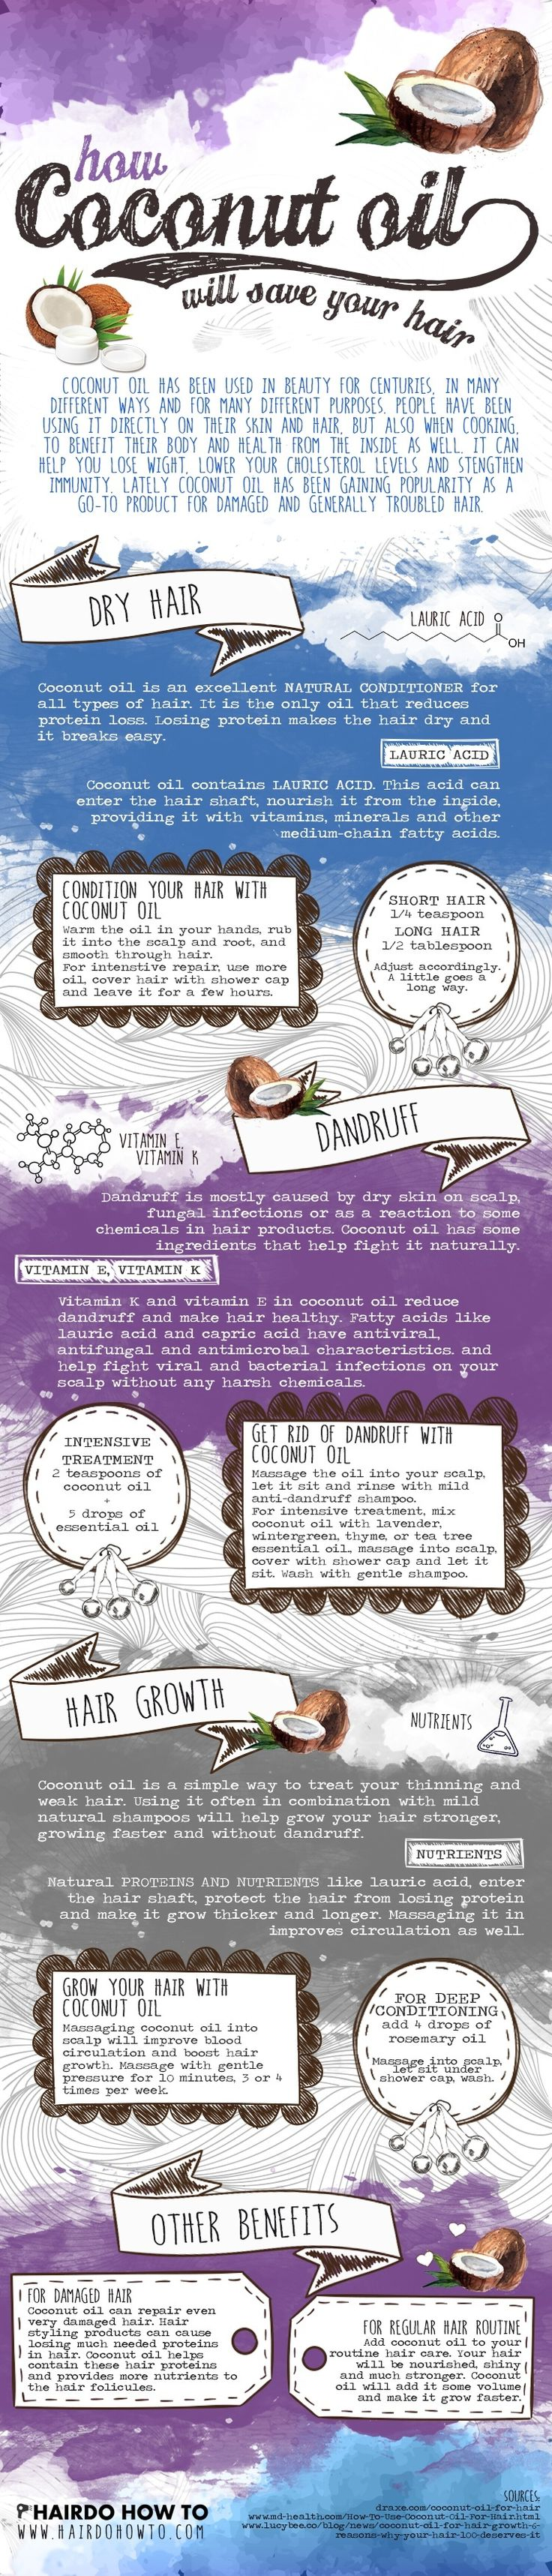 How Coconut Oil will Save Your Hair #infographic #coconutoil #hair